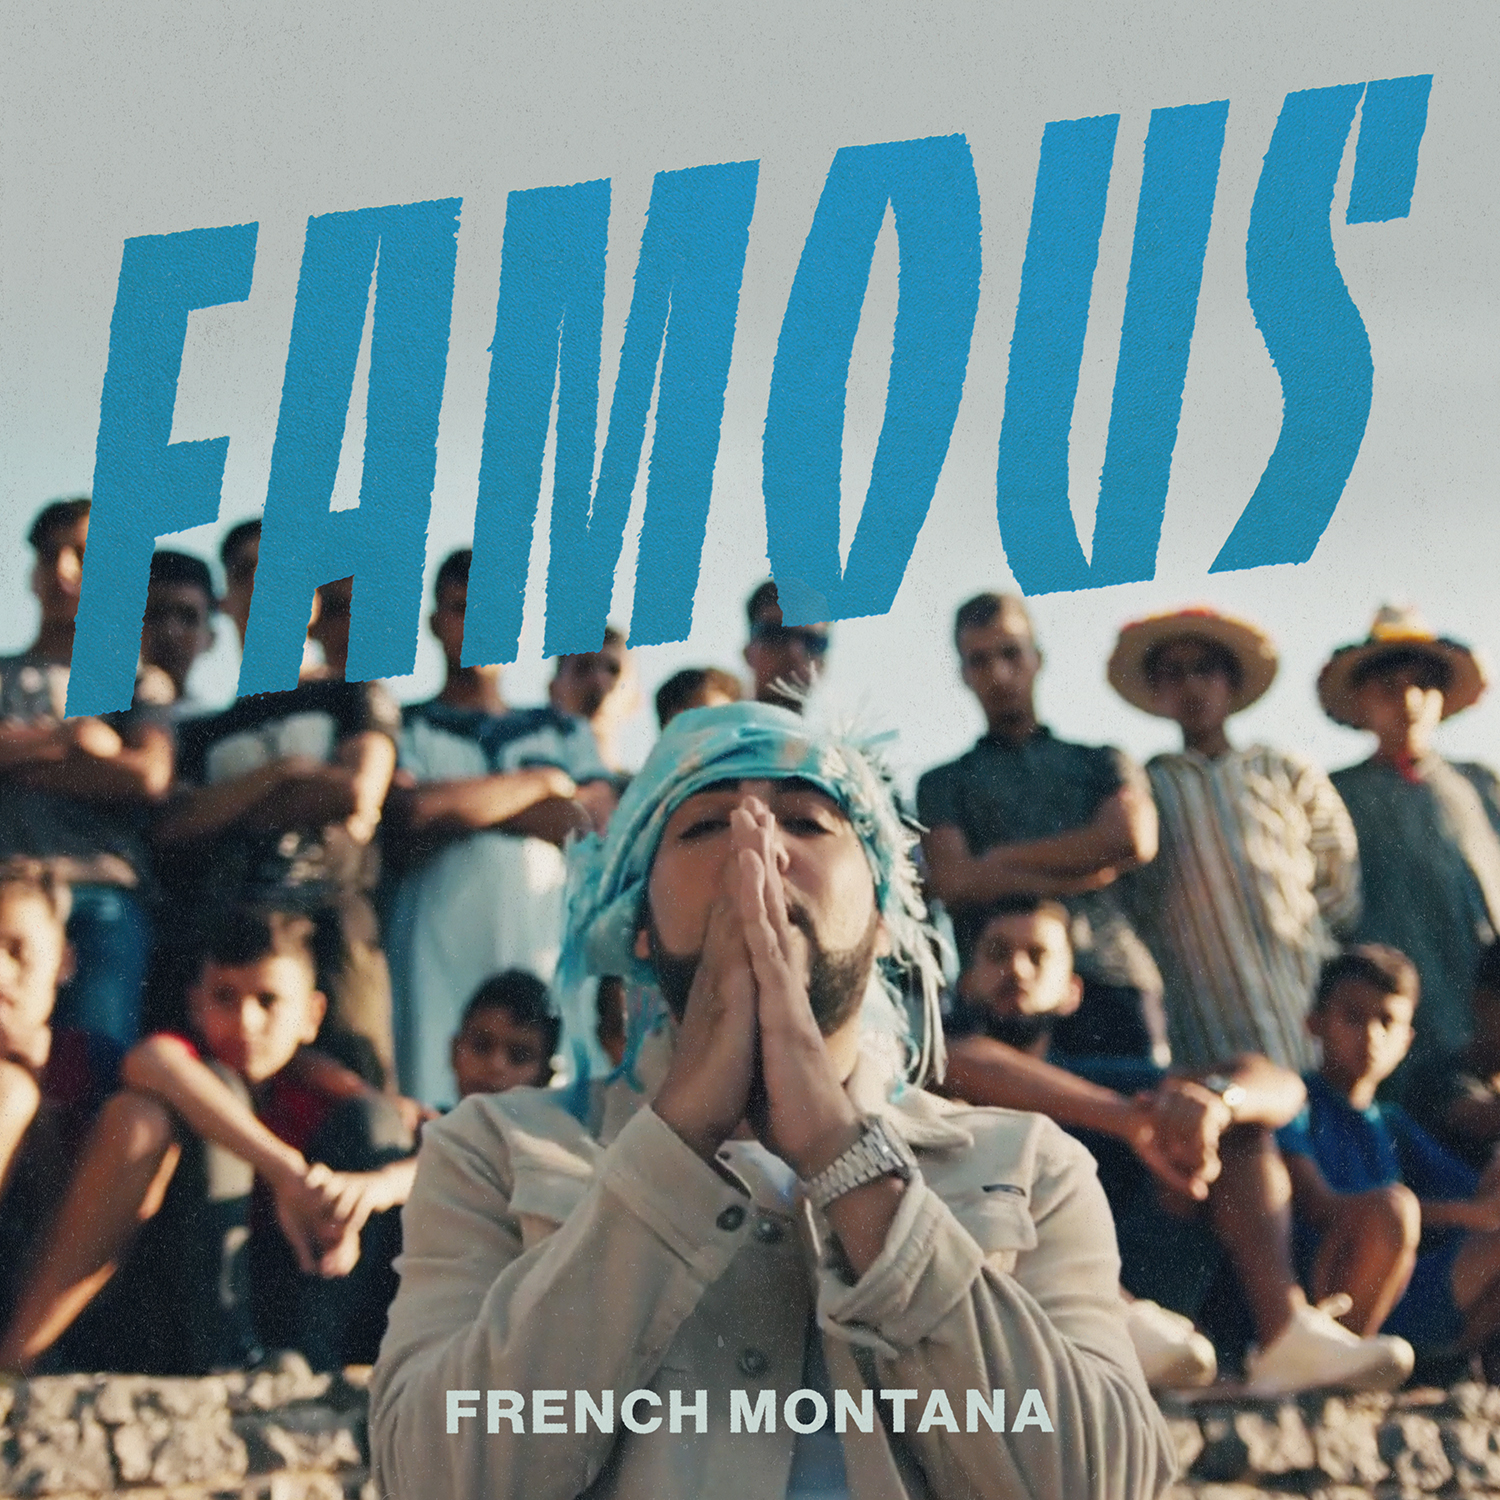 03c2b49a6e2 FRENCH MONTANA PREMIERES FAMOUS MUSIC VIDEO - Epic Records